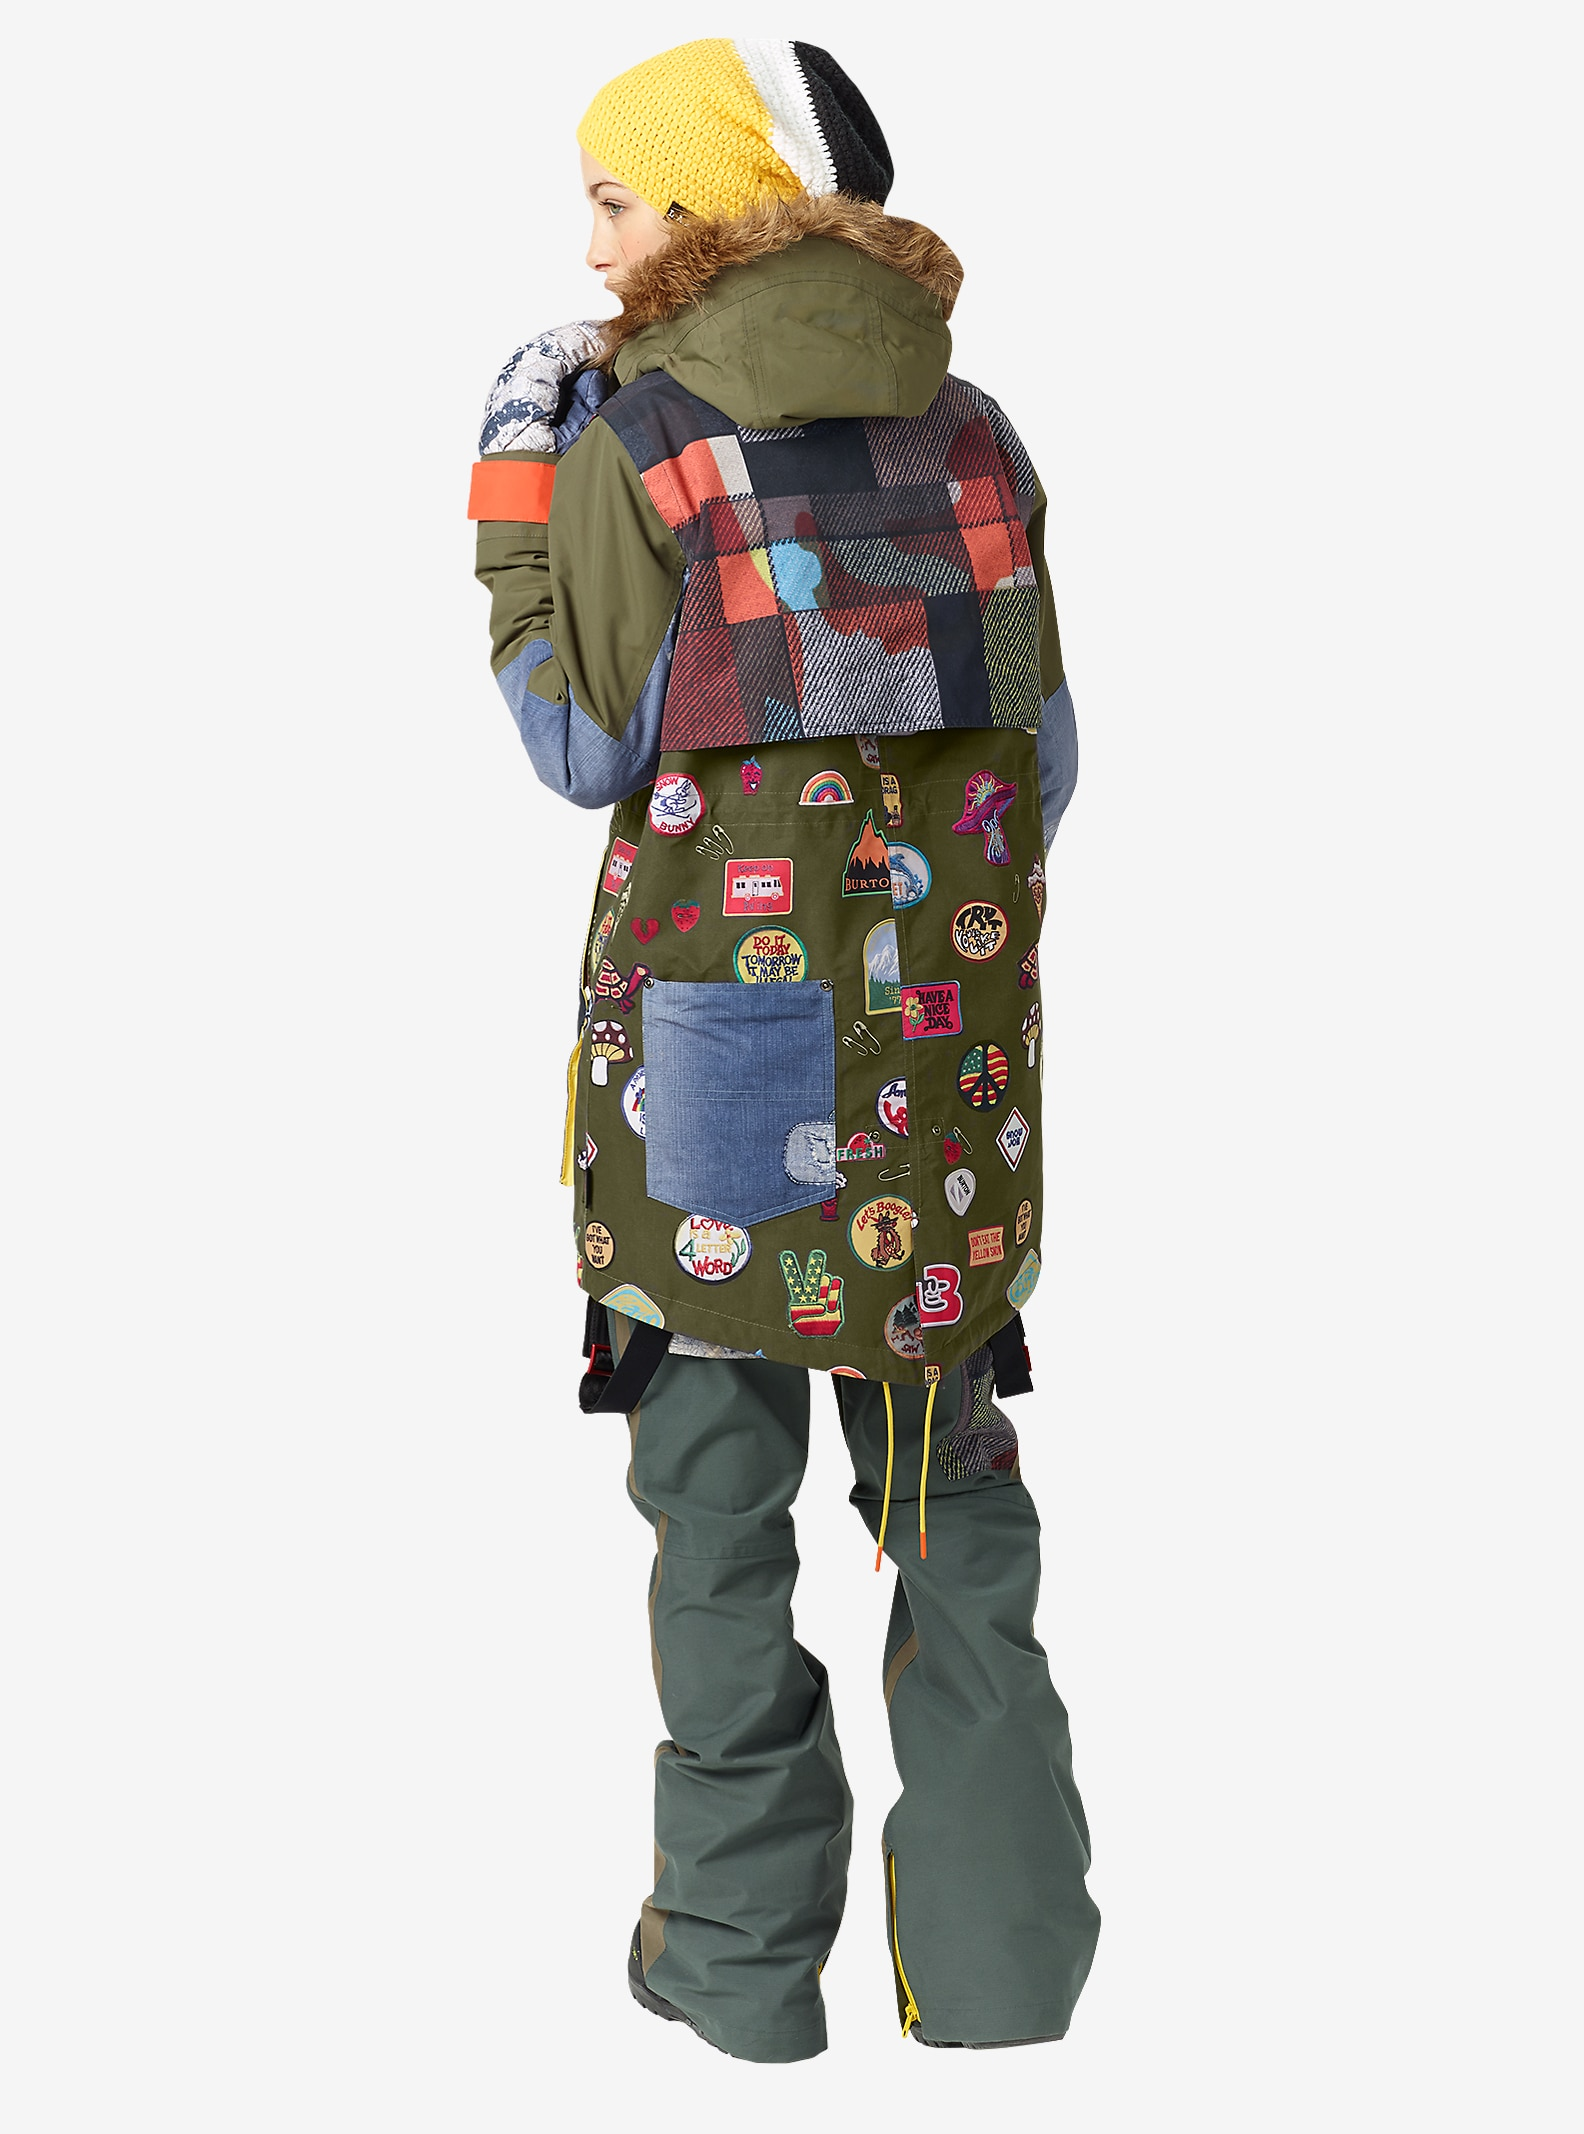 L.A.M.B. x Burton Riff Parka angezeigt in Camp Patches